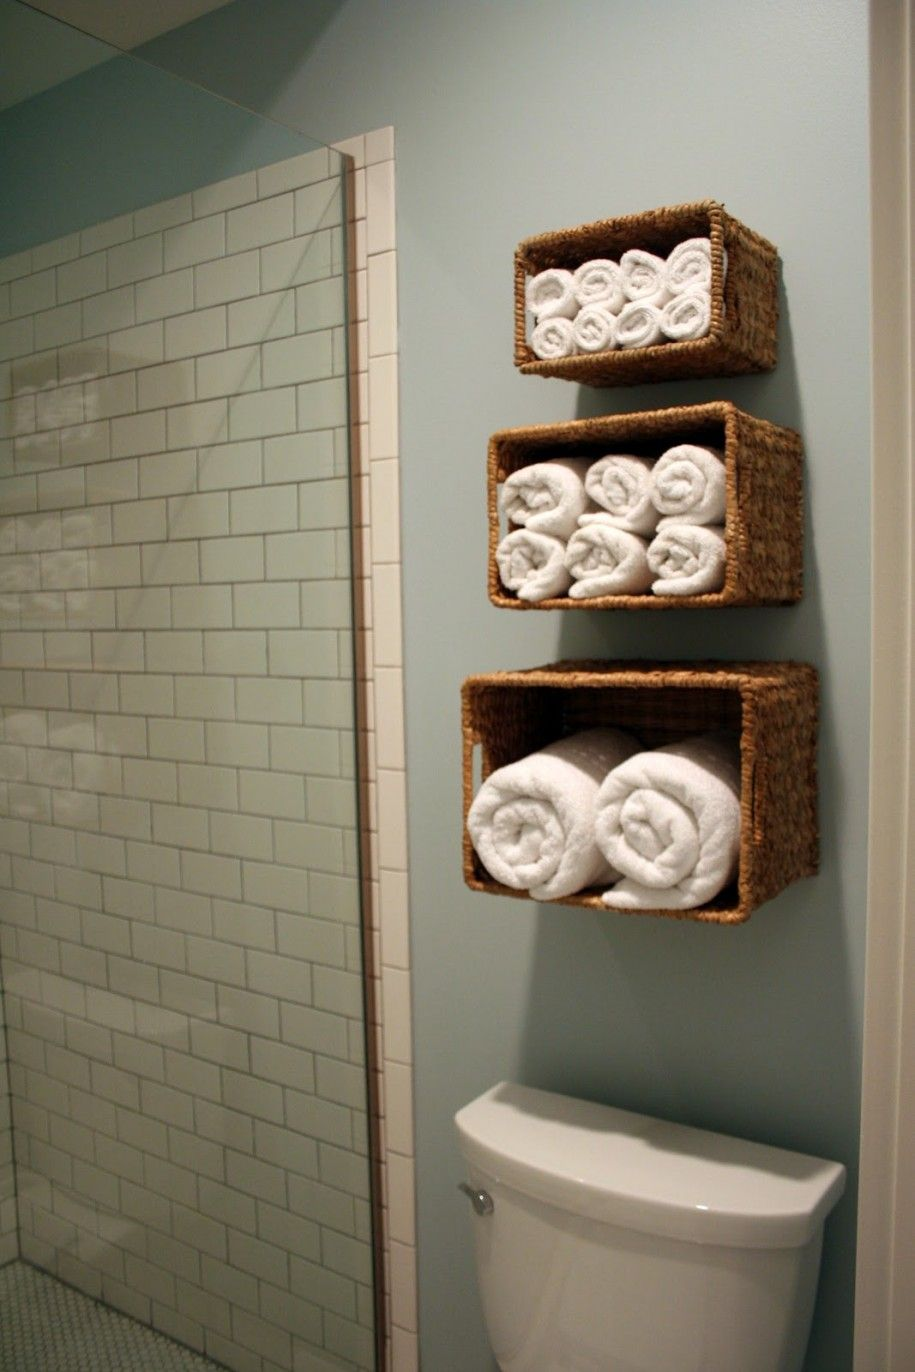 Bathroom storage for towels - Inspiring Do It Yourself Towel Storage Ideas